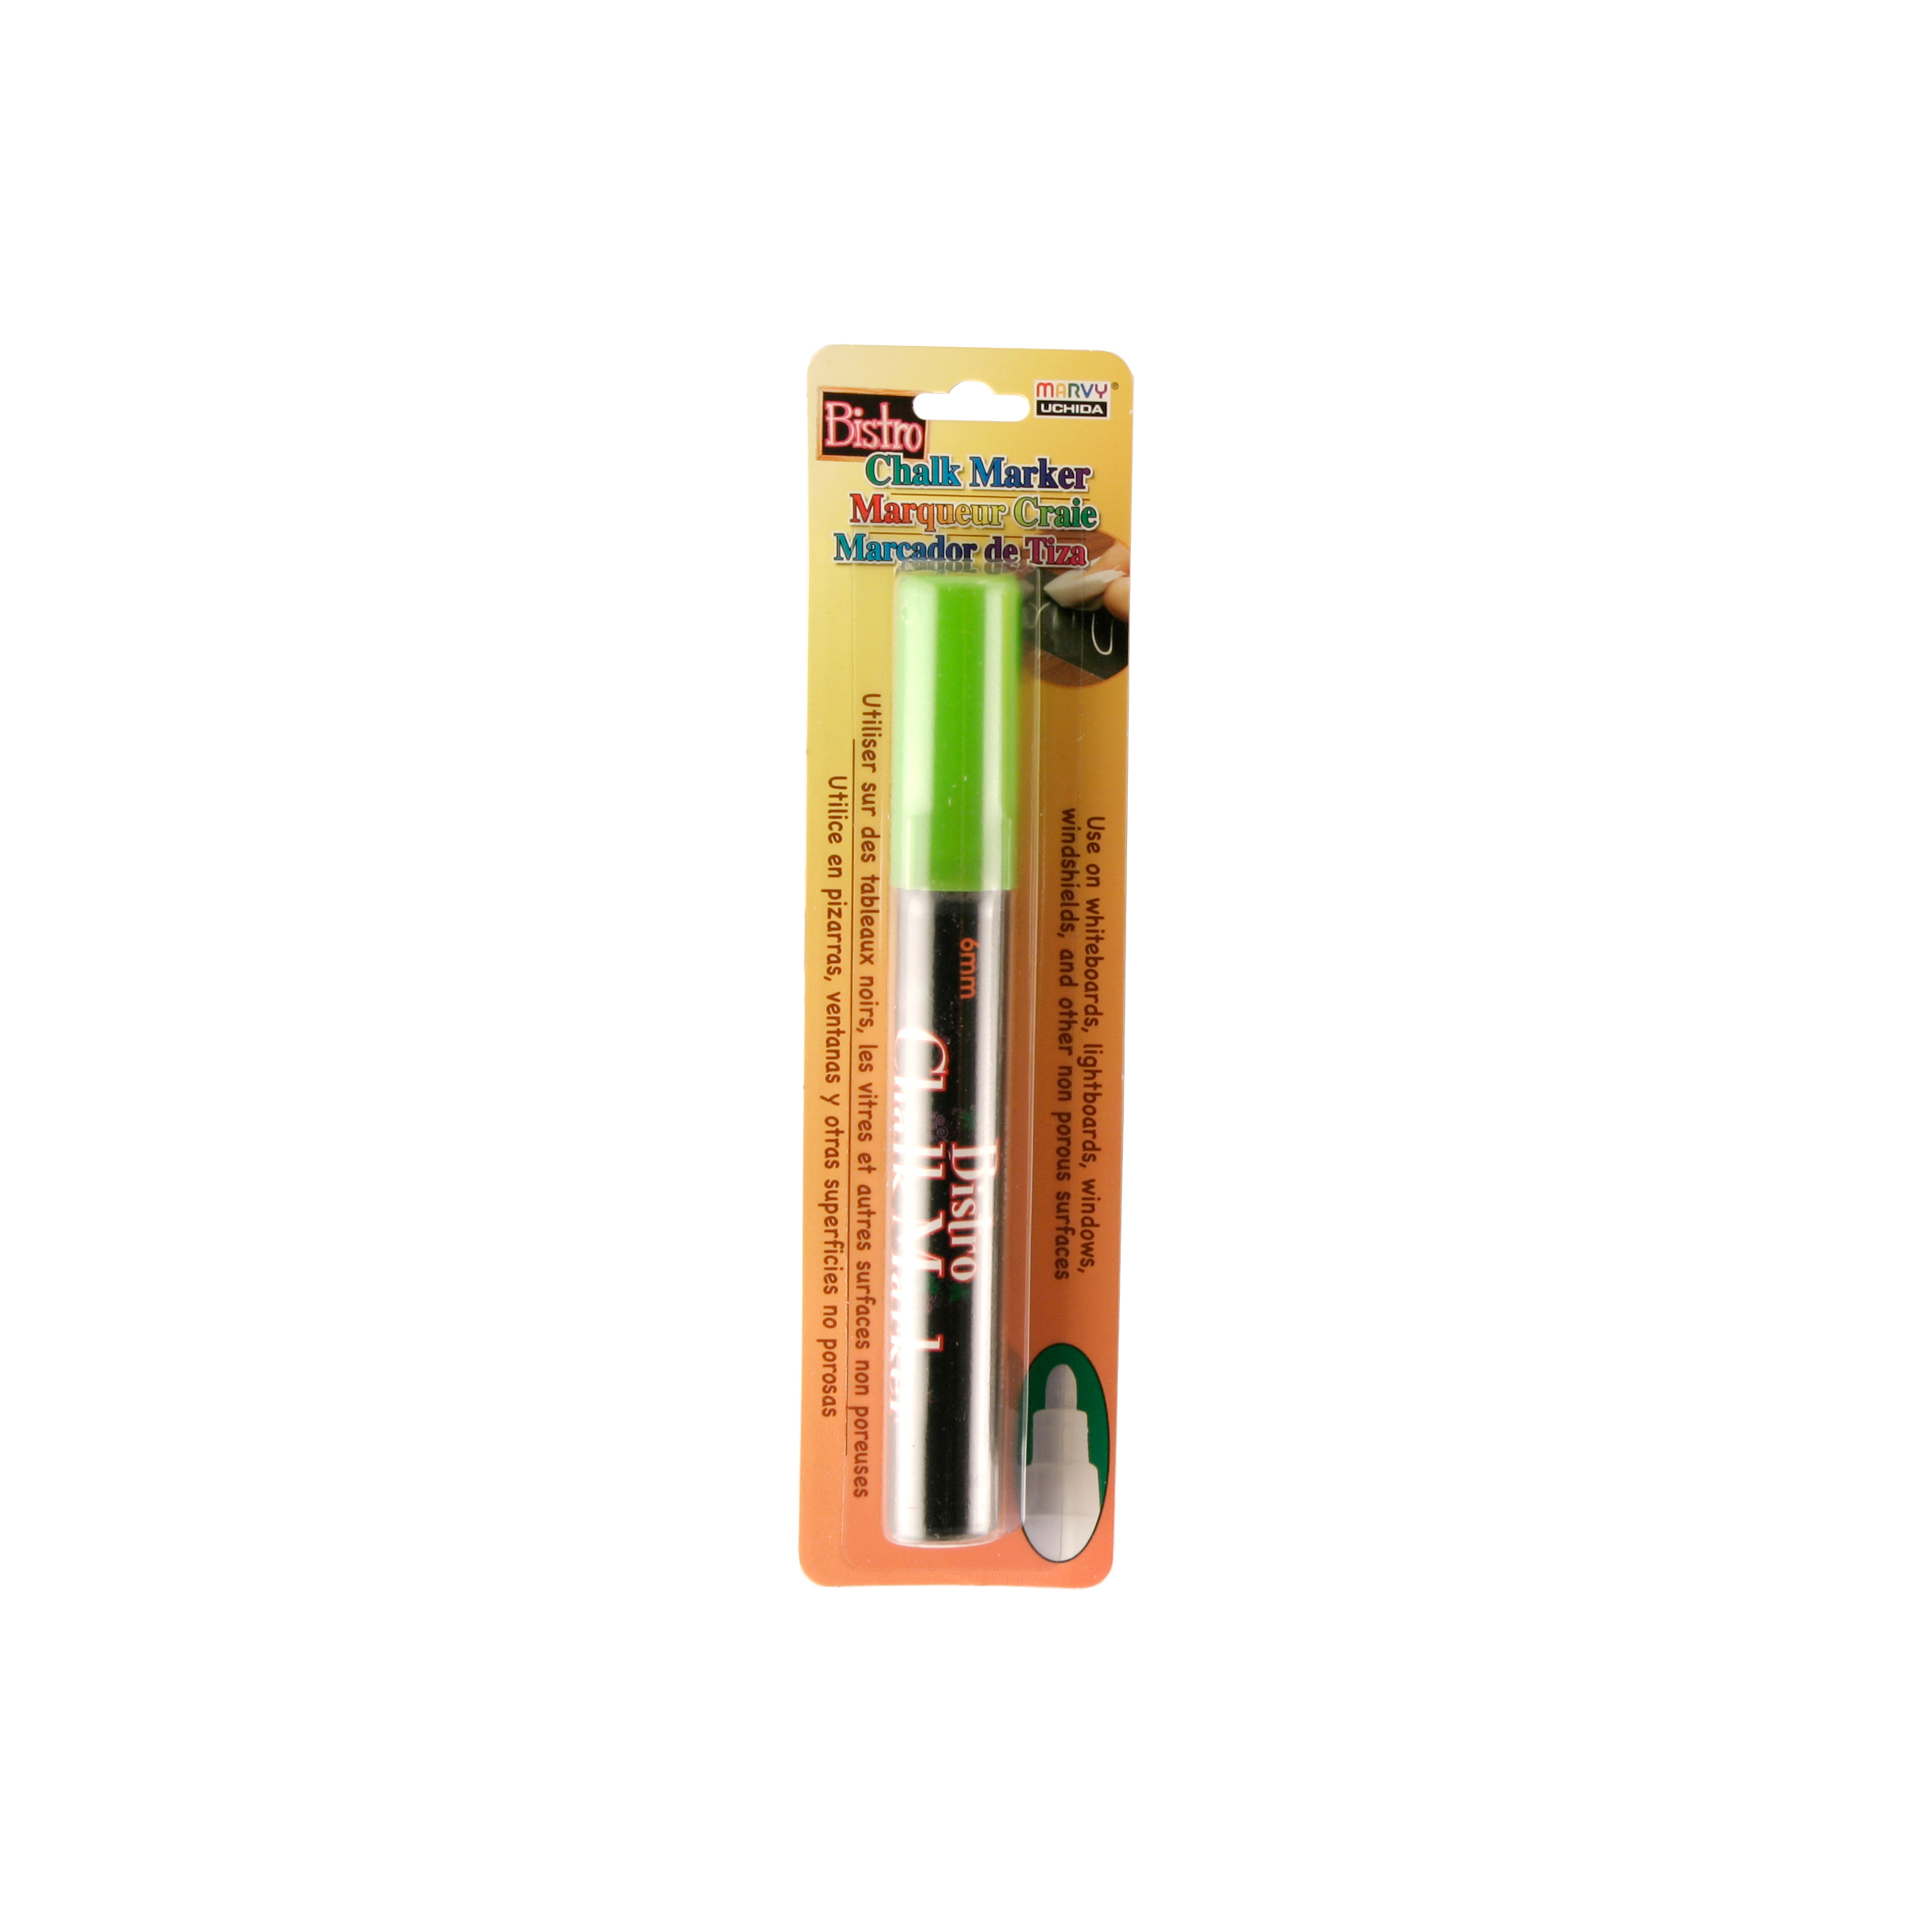 Bistro Chalk Marker 6mm Bullet Tip 1/Pkg-White, Fluorescent Green